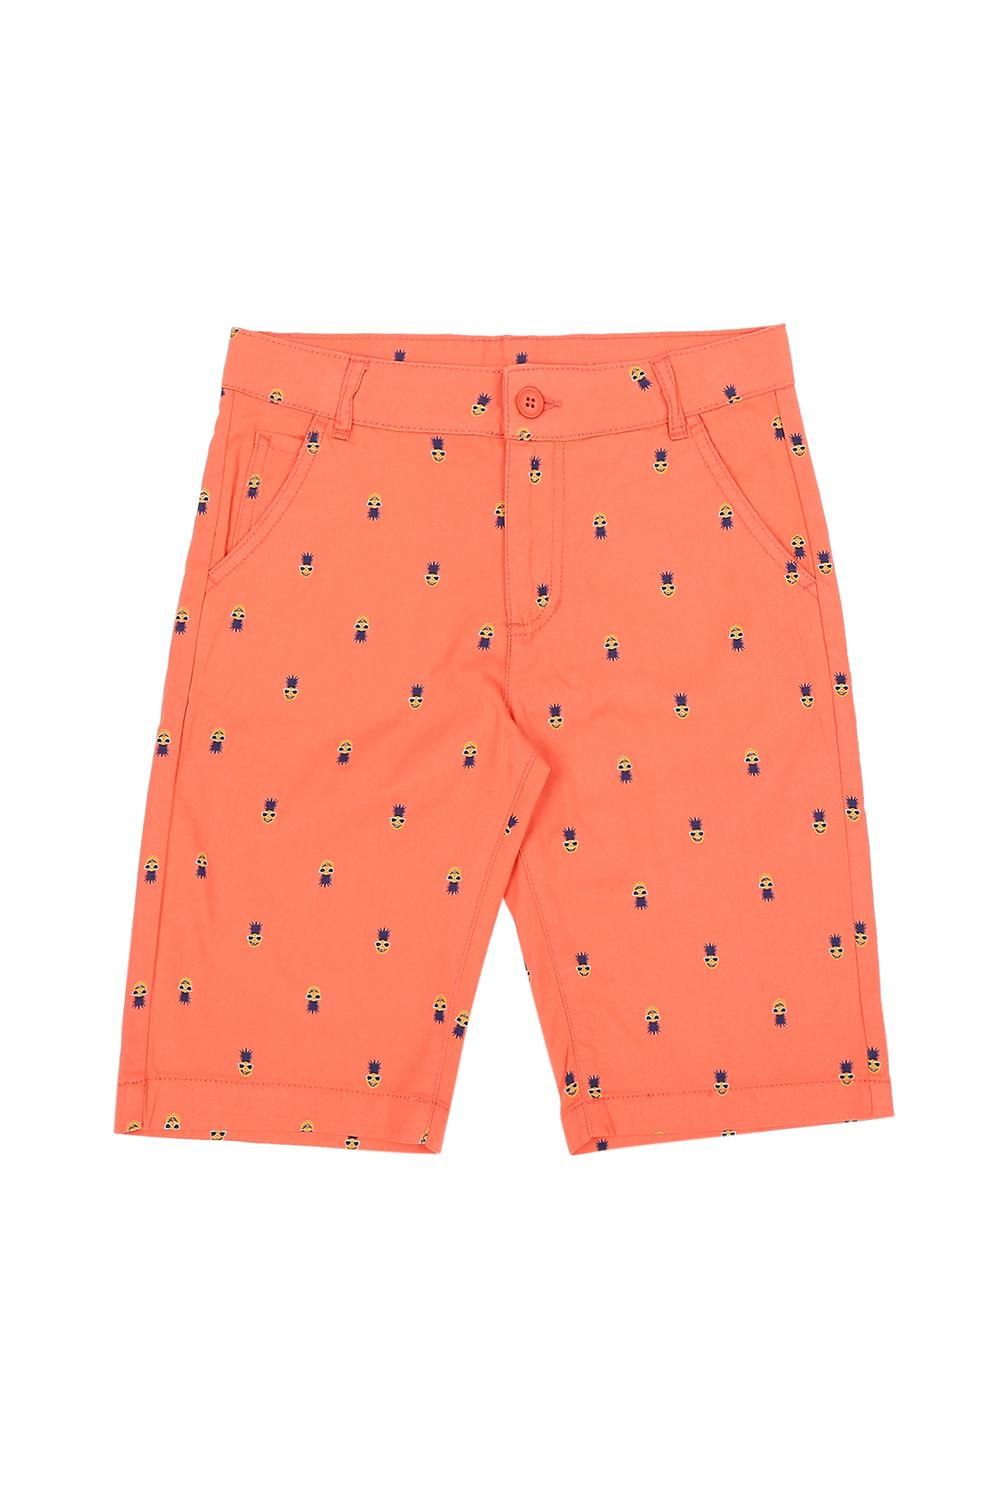 8a728c47b8 Pantaloons Junior Bottoms, Boys Printed Casual Shorts for Boys at ...